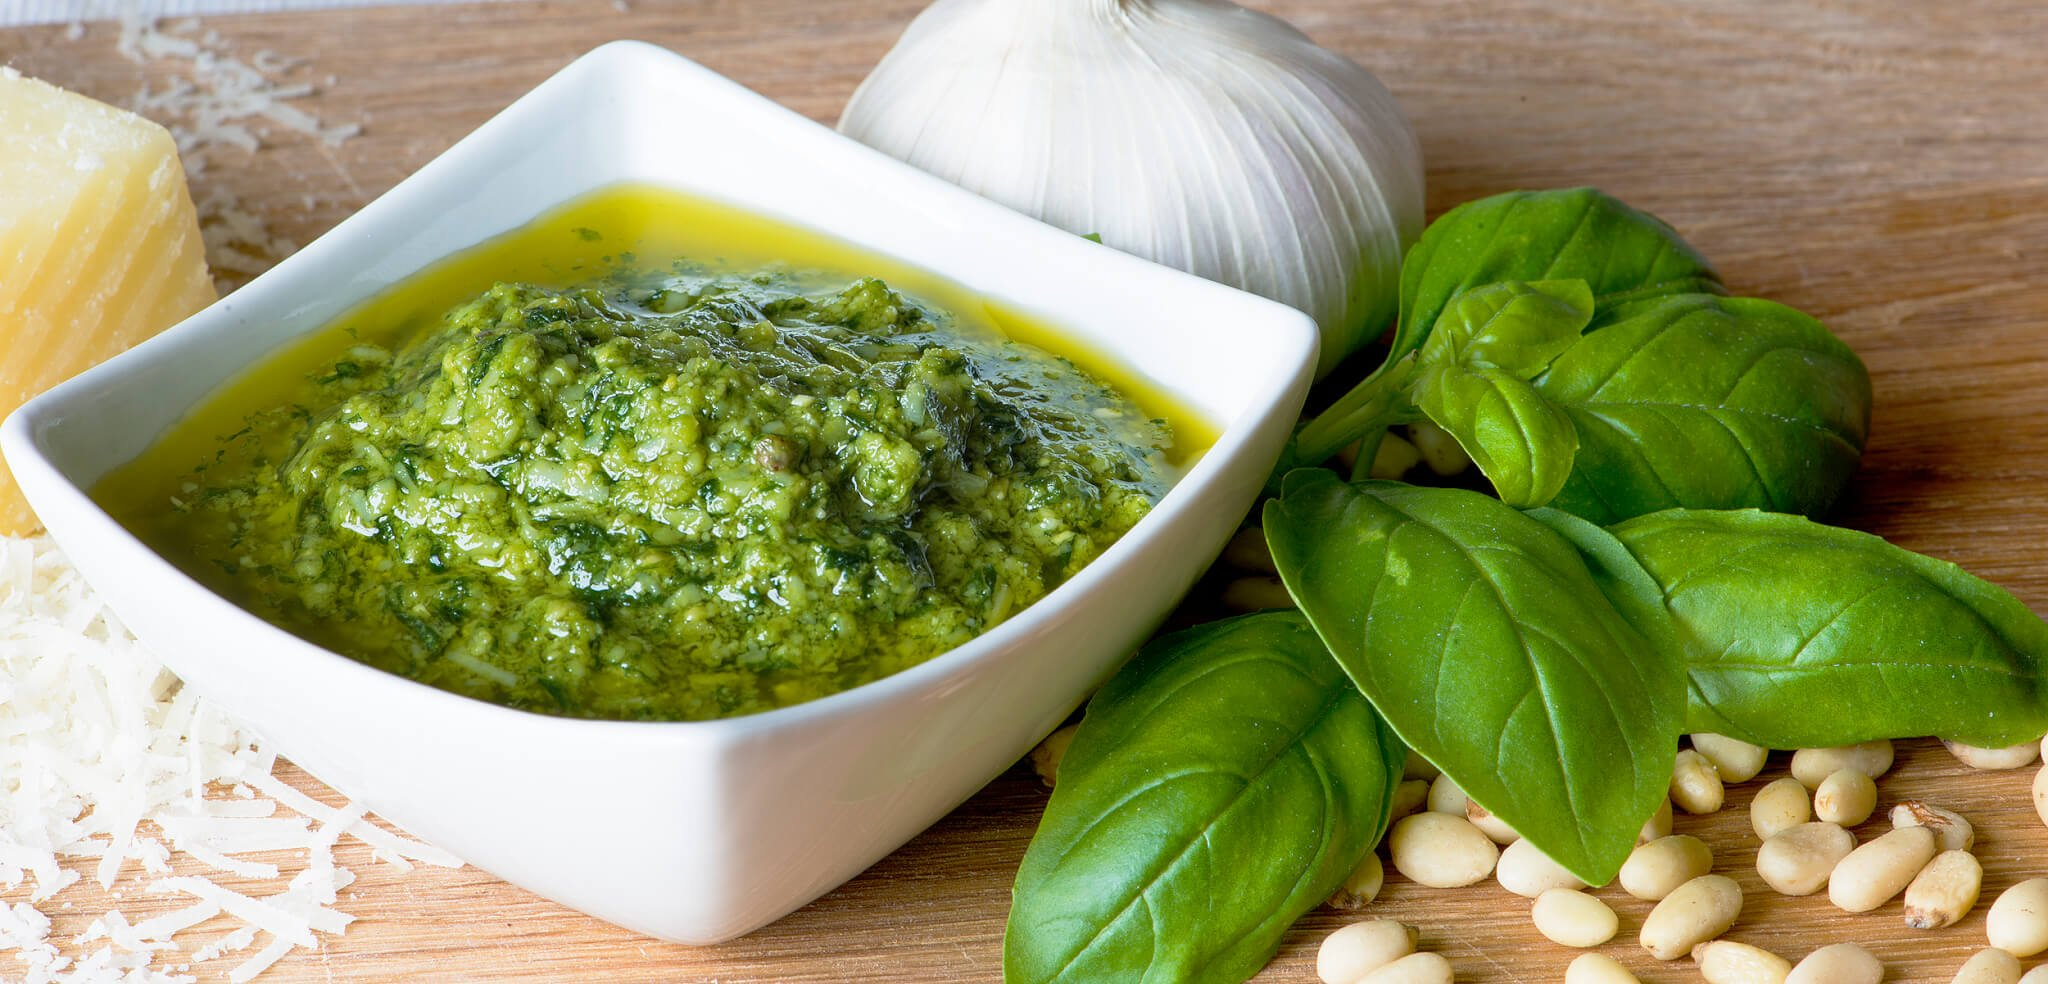 Dr. Gundry's Amazing Basil Pesto Recipe